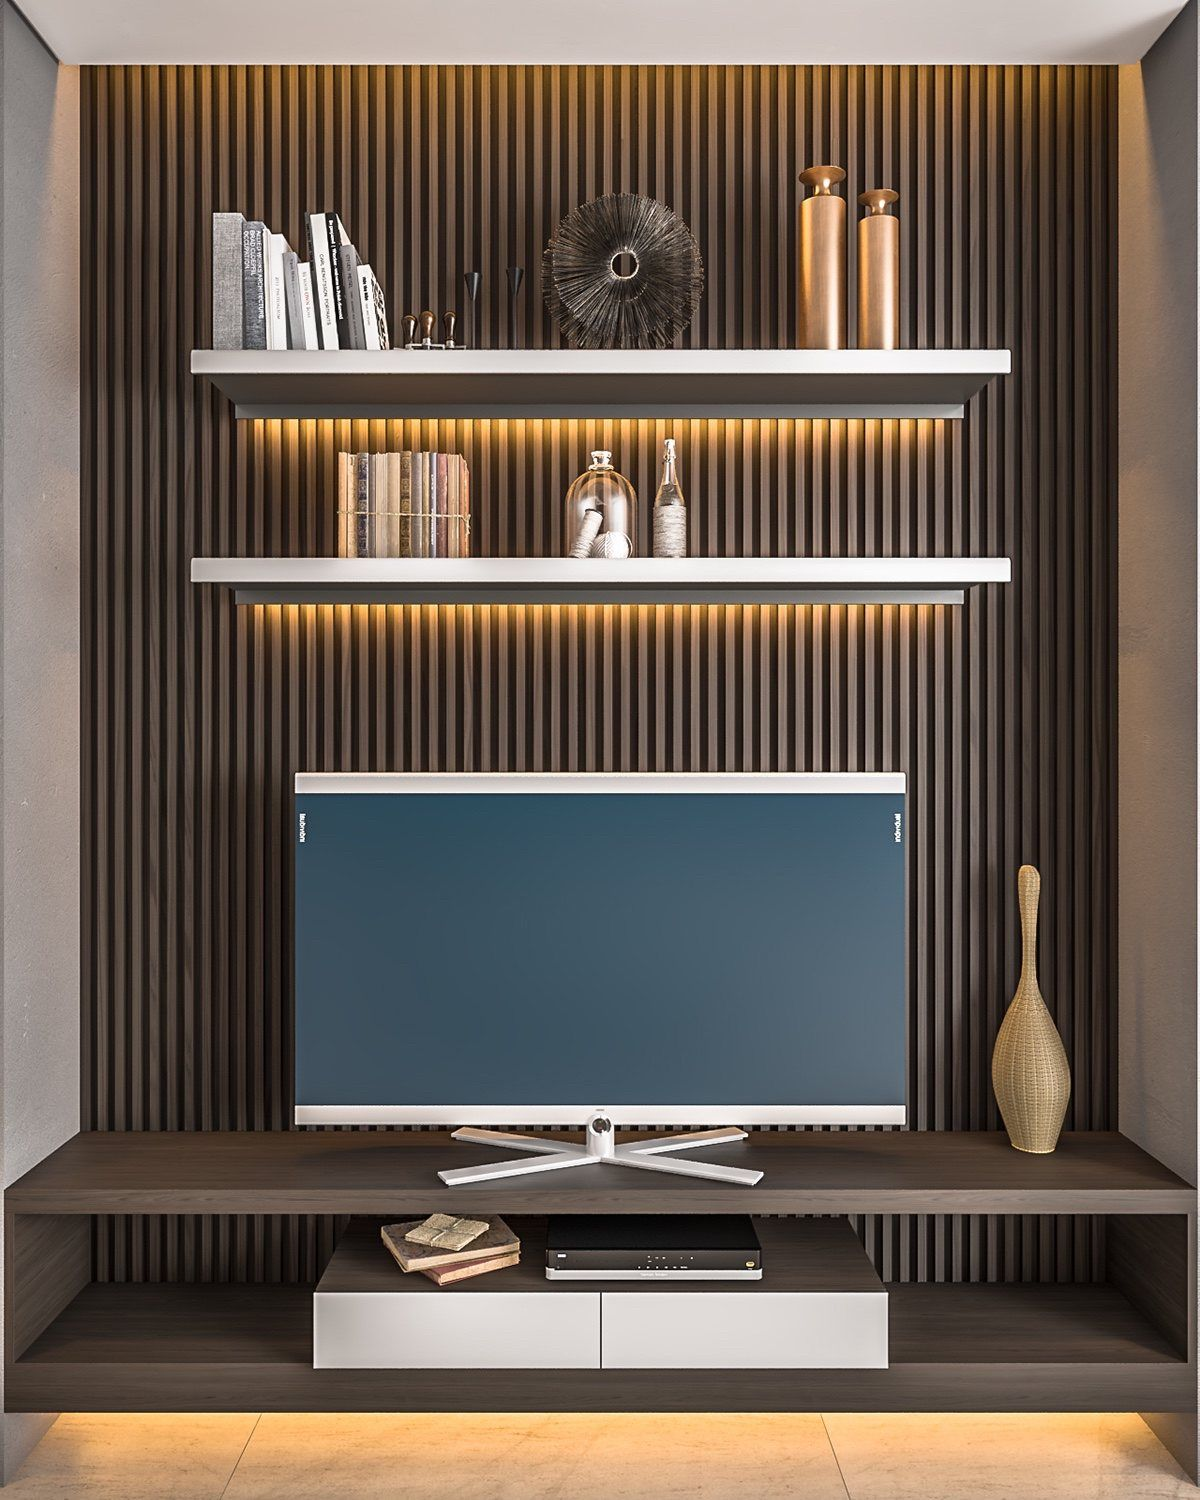 275 Best Lcd Unit Images On Pinterest: The Bedroom Is A Place To Relax, To Be Pampered, And To Be